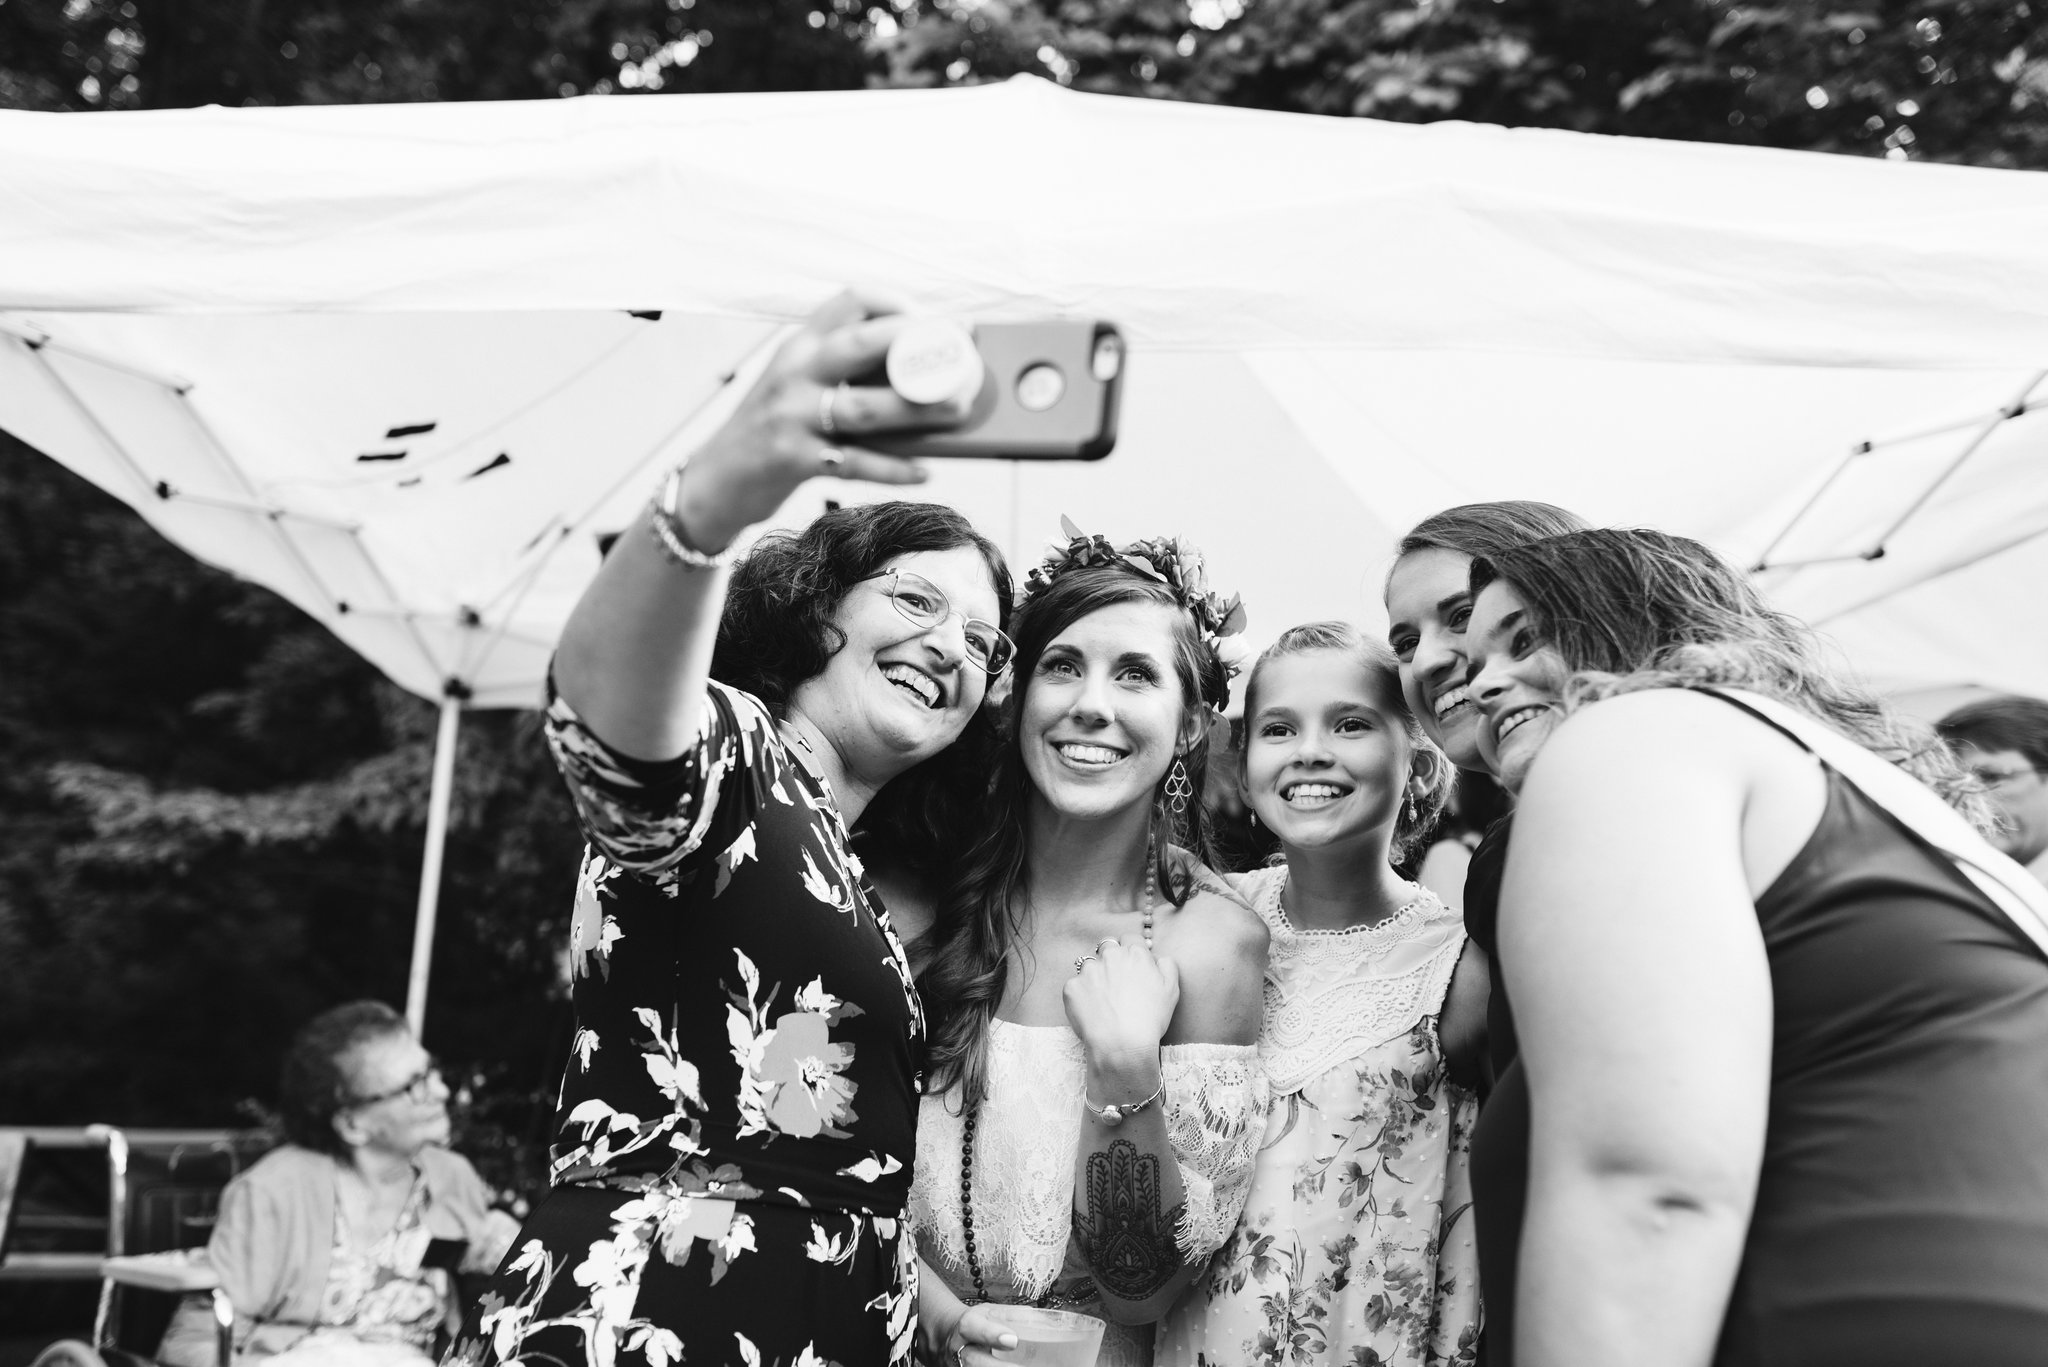 Annapolis, Quaker Wedding, Maryland Wedding Photographer, Intimate, Small Wedding, Vintage, DIY, Bride Taking Selfie with Family, Black and White Photo